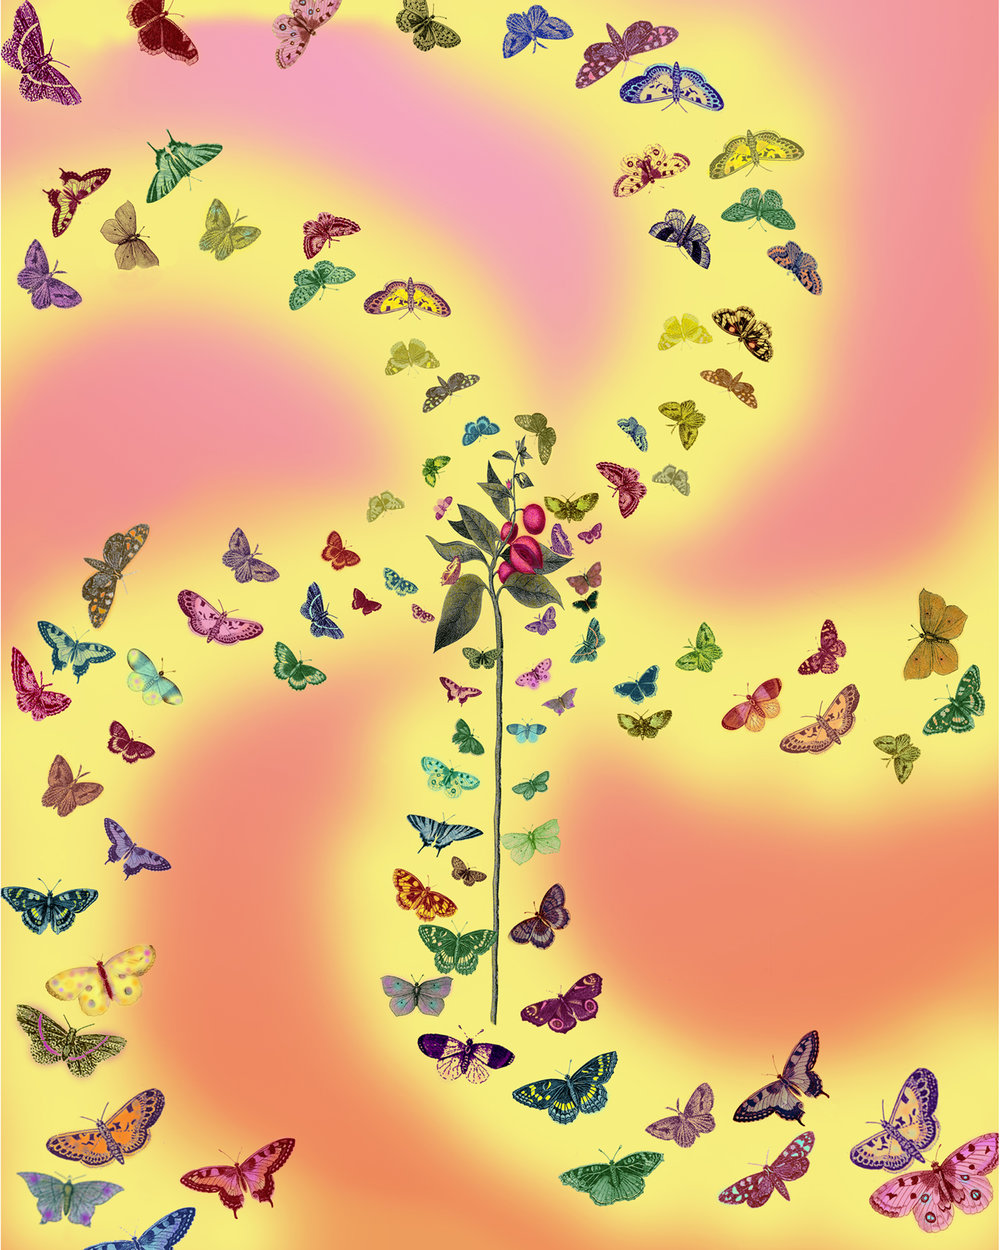 33_Butterfly Frenzy copy.jpg